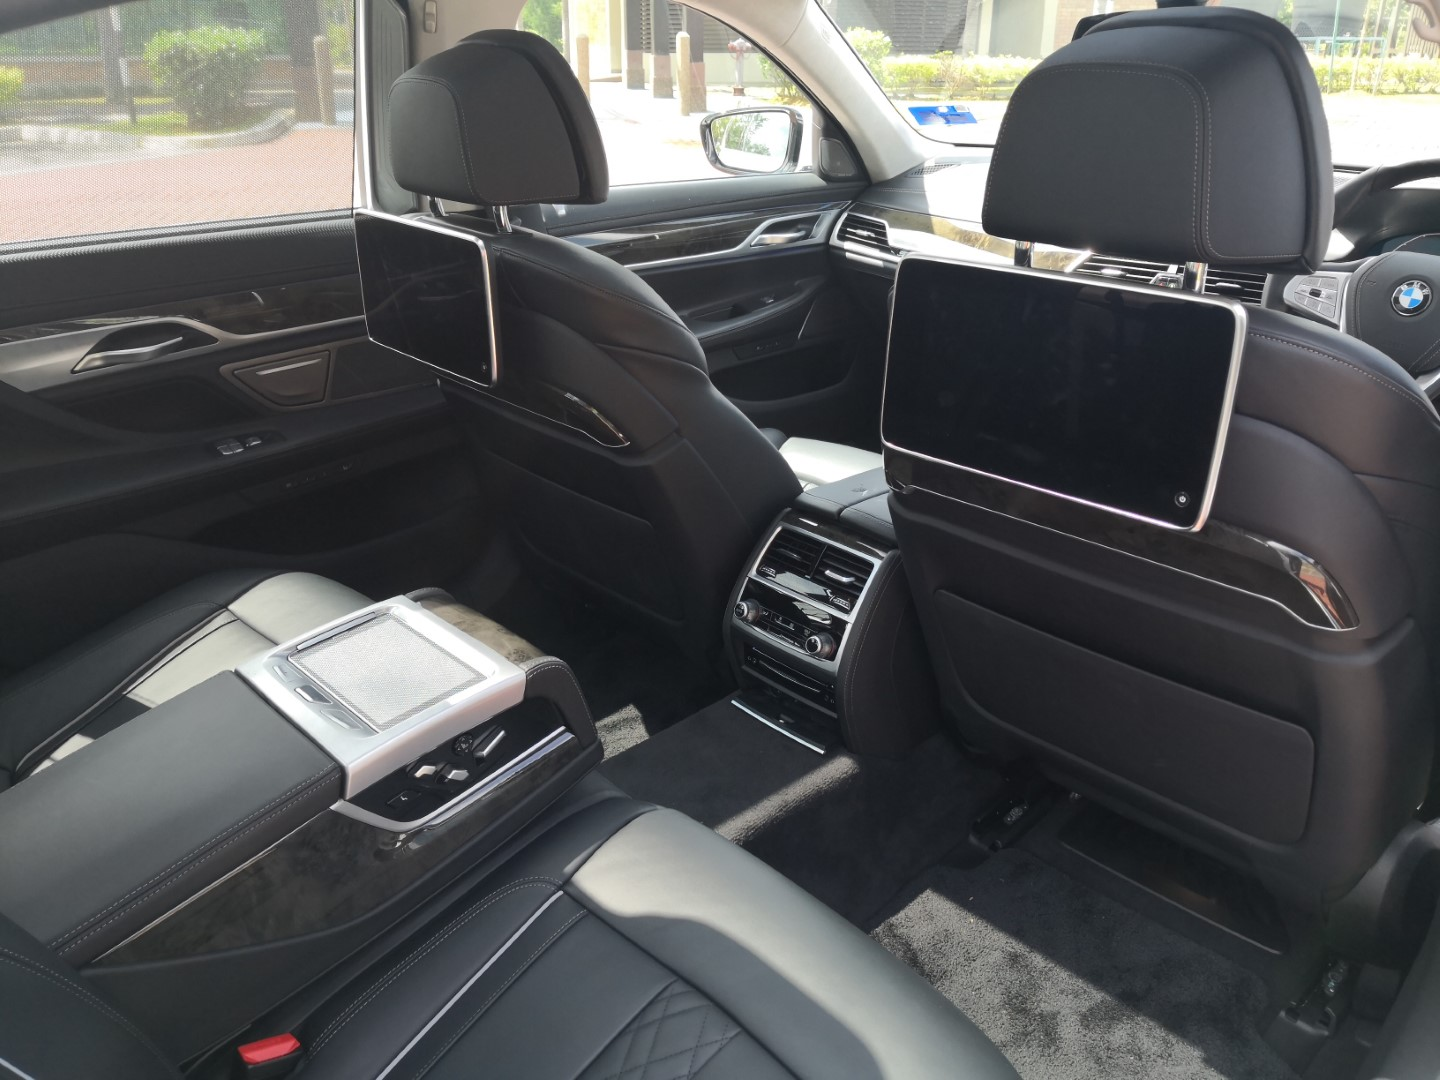 bmw 740le rear seat entertainment